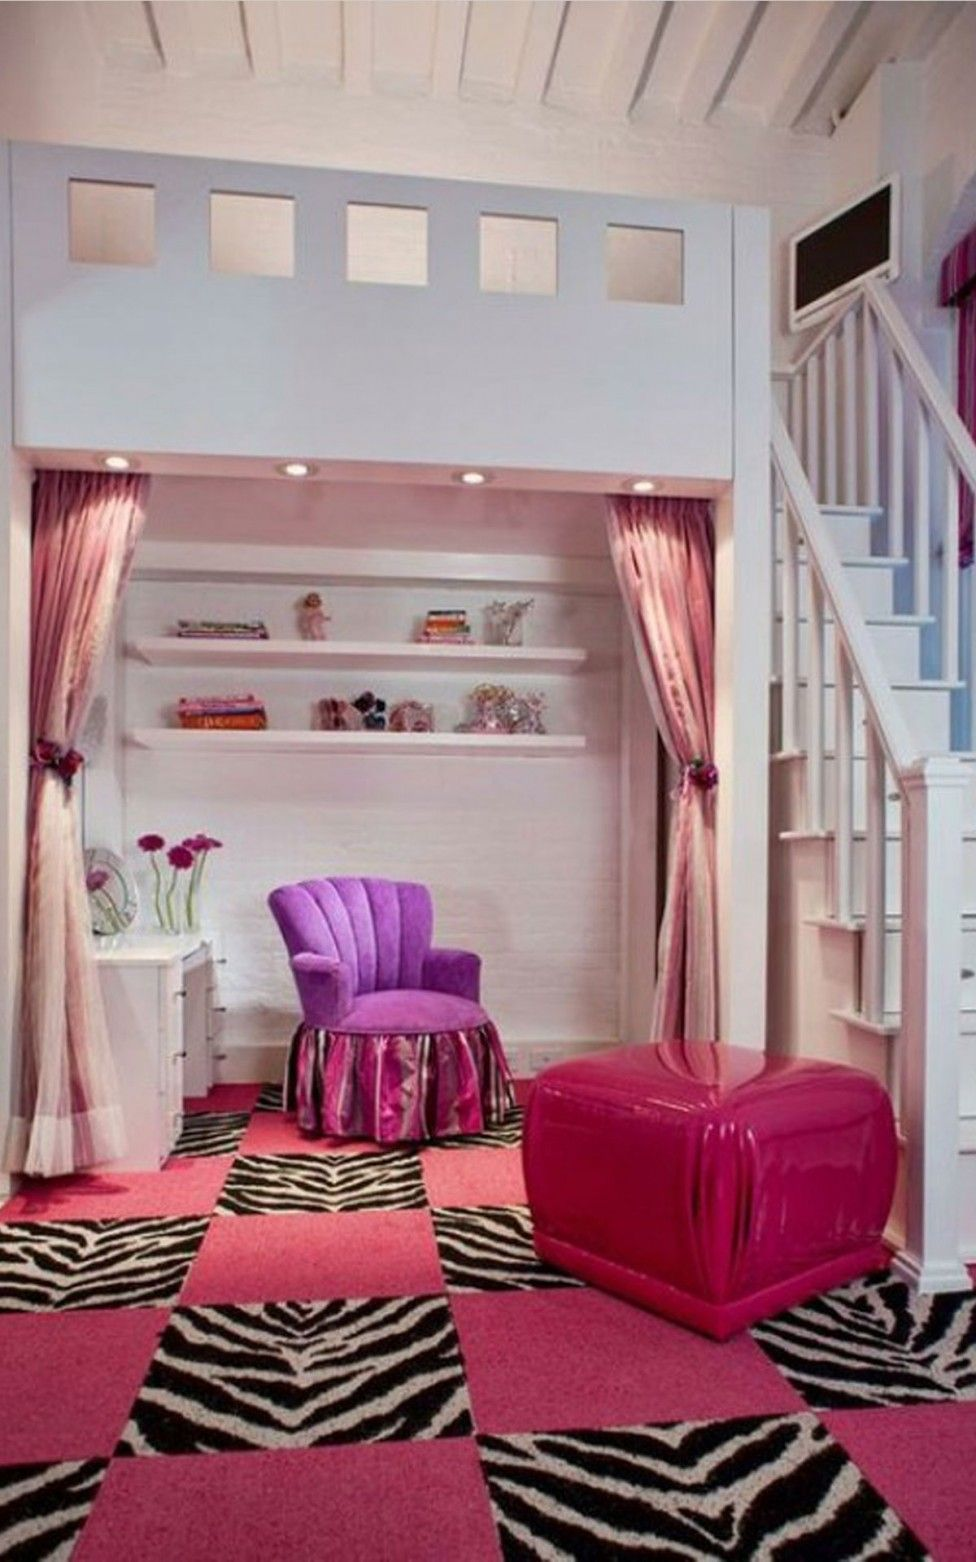 Small room ideas for girls with cute color bedroom 22 Teenage room ideas small space